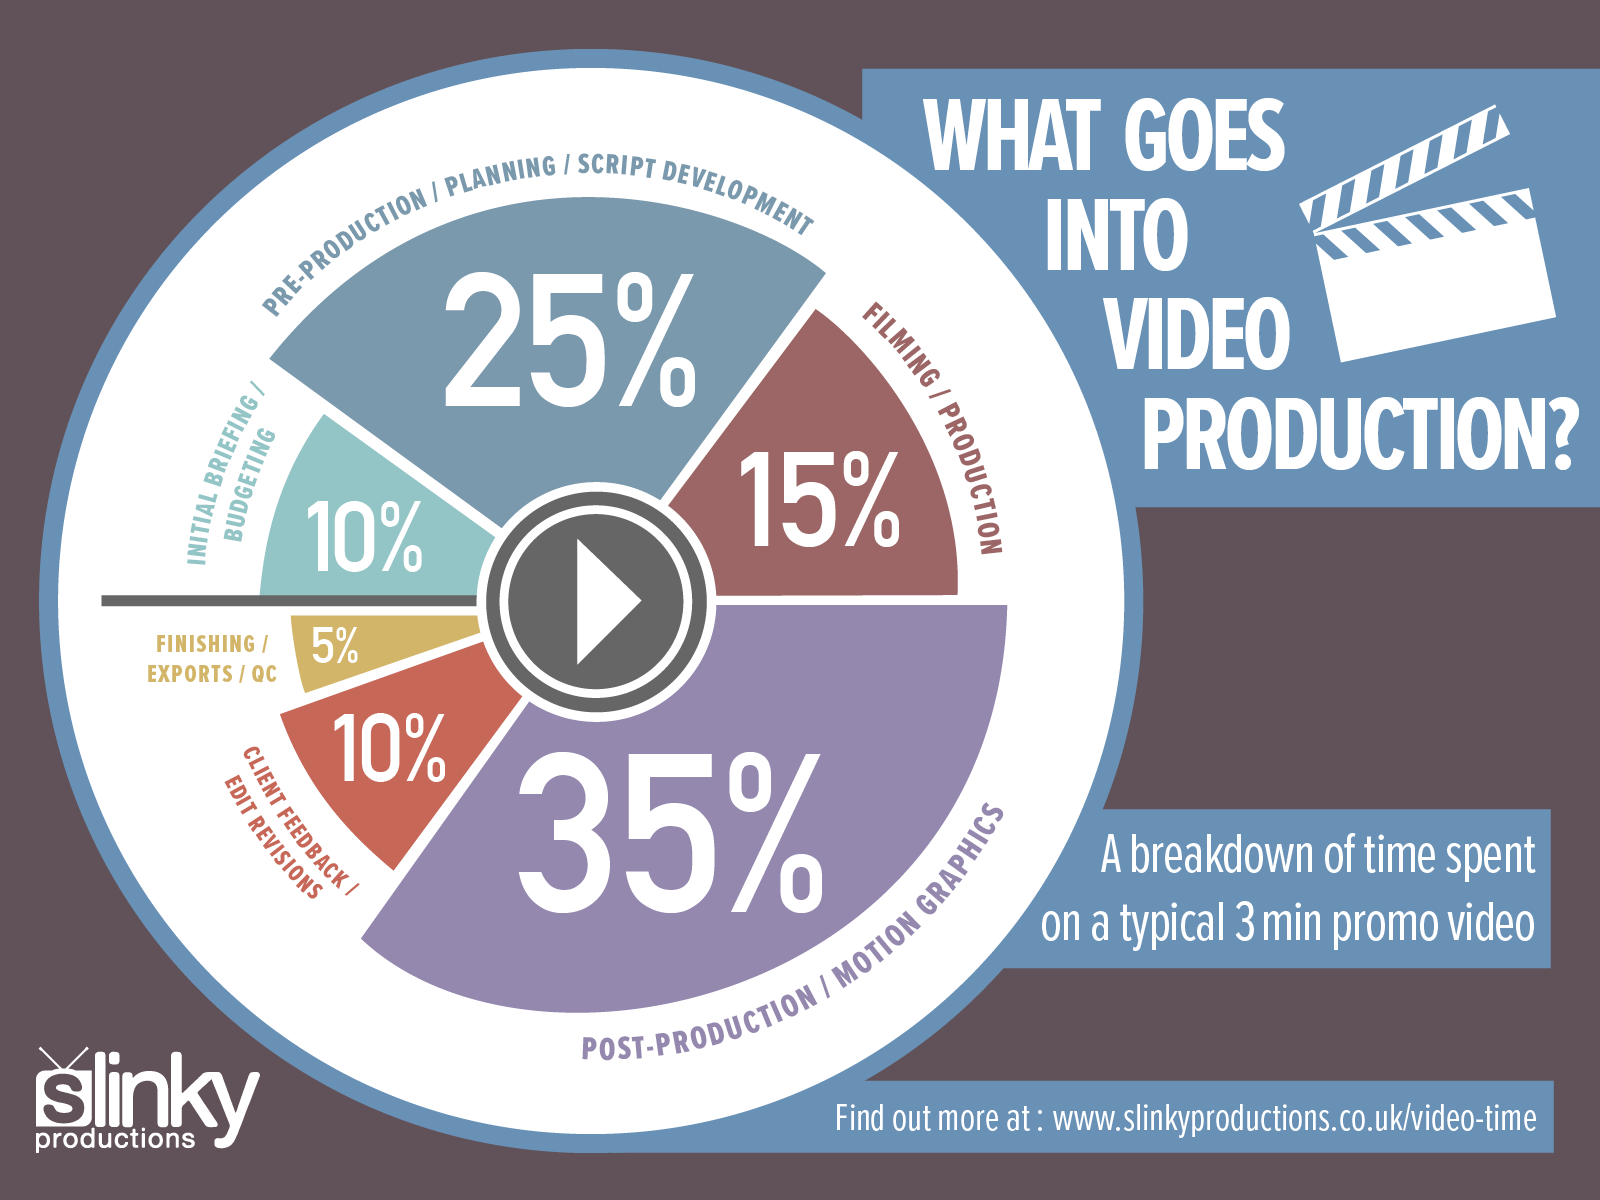 What Goes Into Video Production? A breakdown of time spent on a typical 3 minute promotional video.